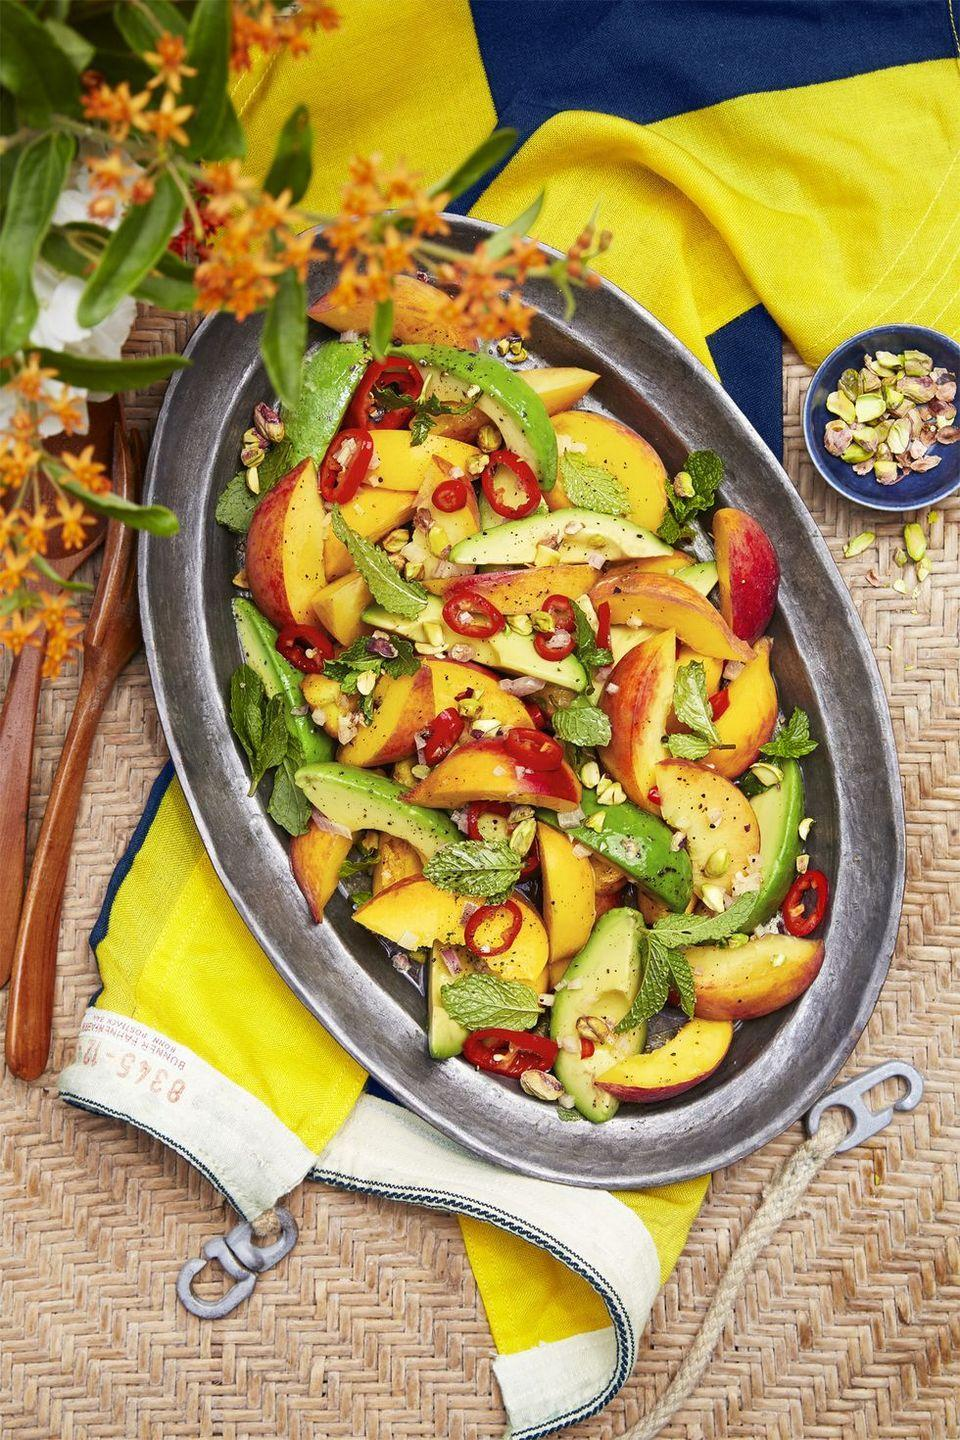 """<p>Fresno chiles add a kick to creamy avocados and sweet peaches in this colorful salad.</p><p><strong><a href=""""https://www.countryliving.com/food-drinks/recipes/a43551/spicy-peach-avocado-salad-recipe/"""" rel=""""nofollow noopener"""" target=""""_blank"""" data-ylk=""""slk:Get the recipe"""" class=""""link rapid-noclick-resp"""">Get the recipe</a>.</strong></p>"""